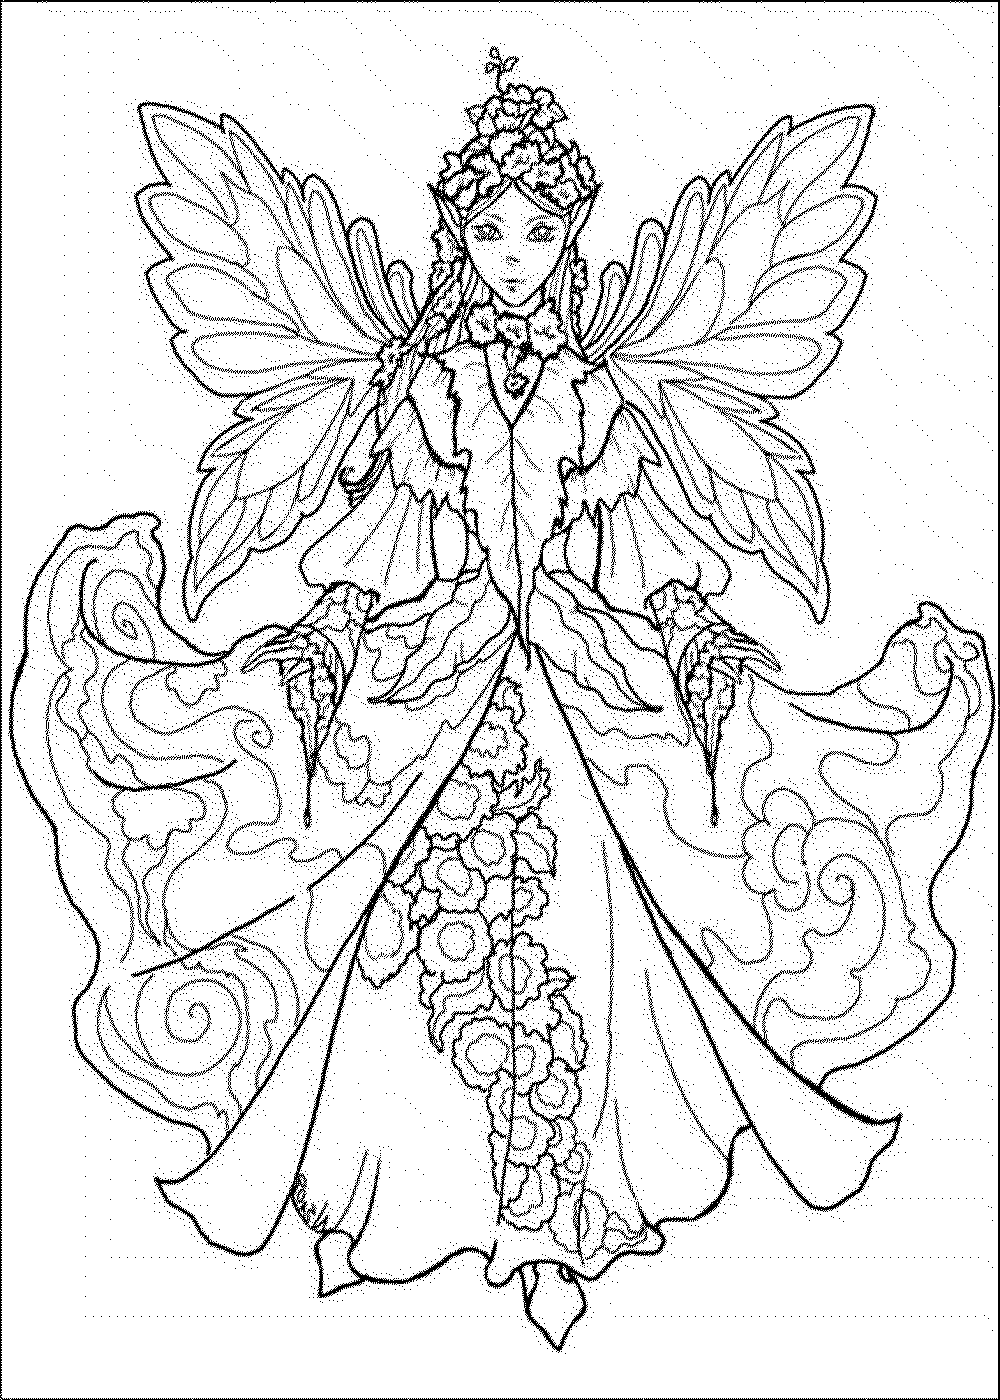 awesome coloring pages coloring pages cool cats coloring awesome pages